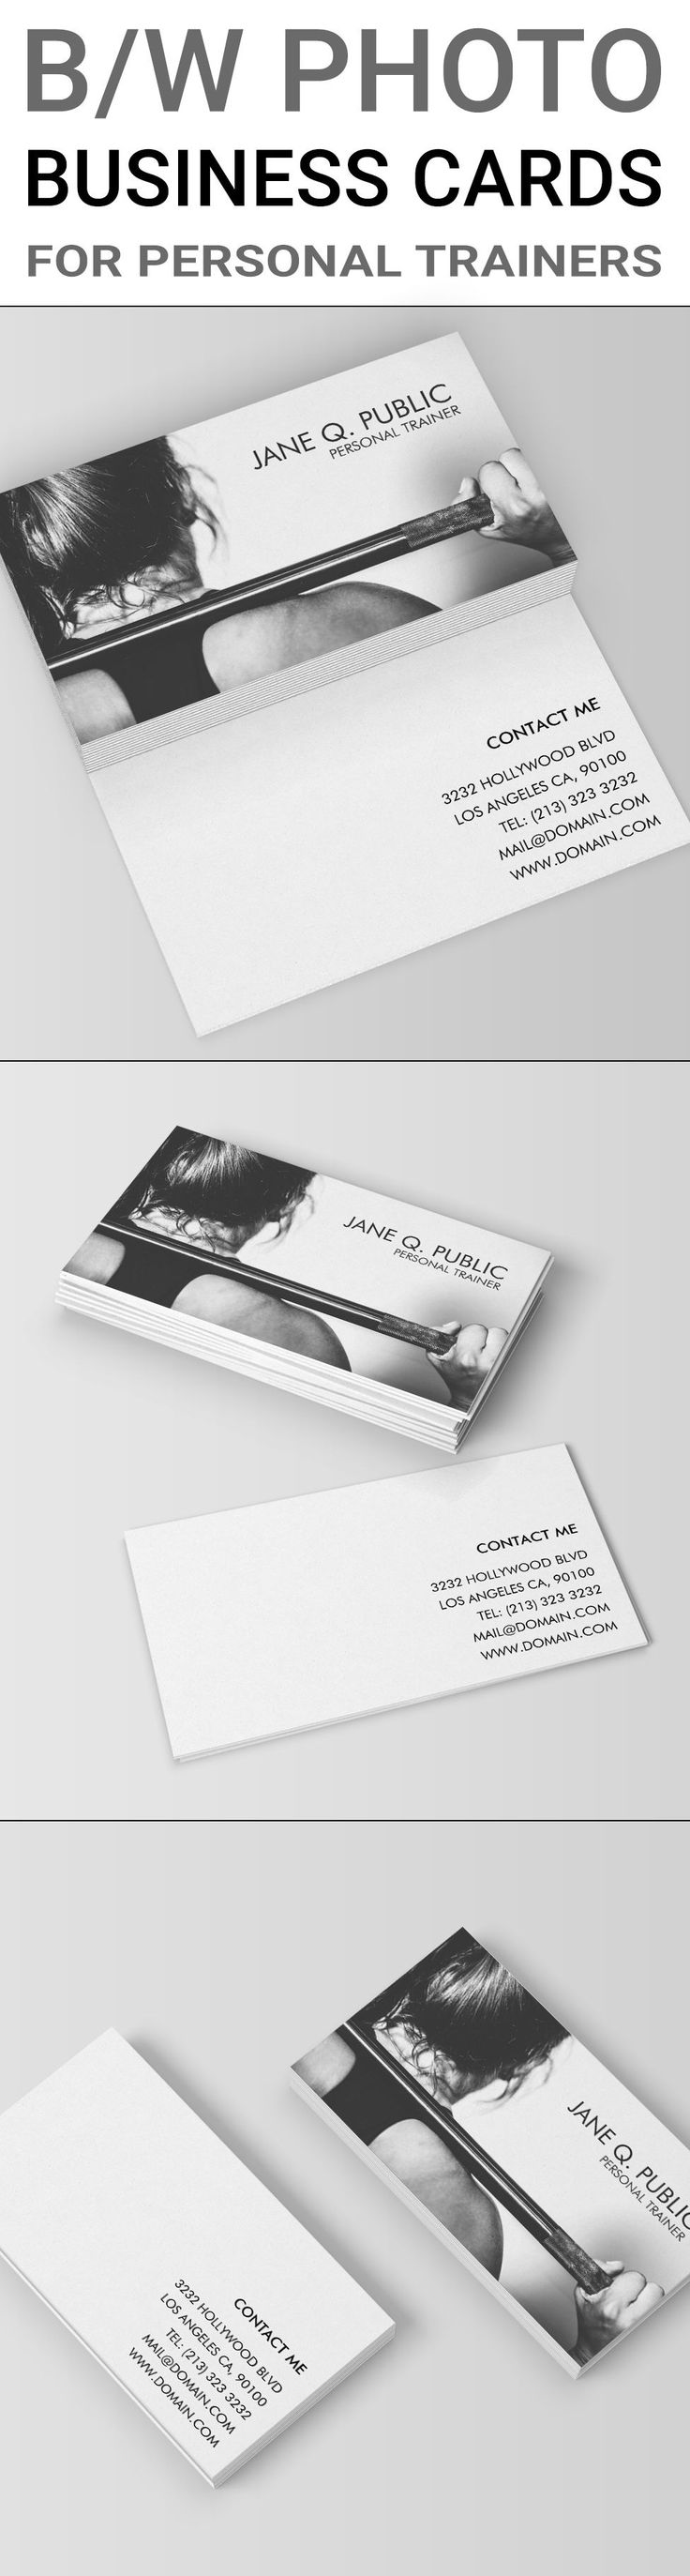 Black and white business cards template for personal trainers, fitness  trainers and athletes. The front of the business card template shows a  black and ...